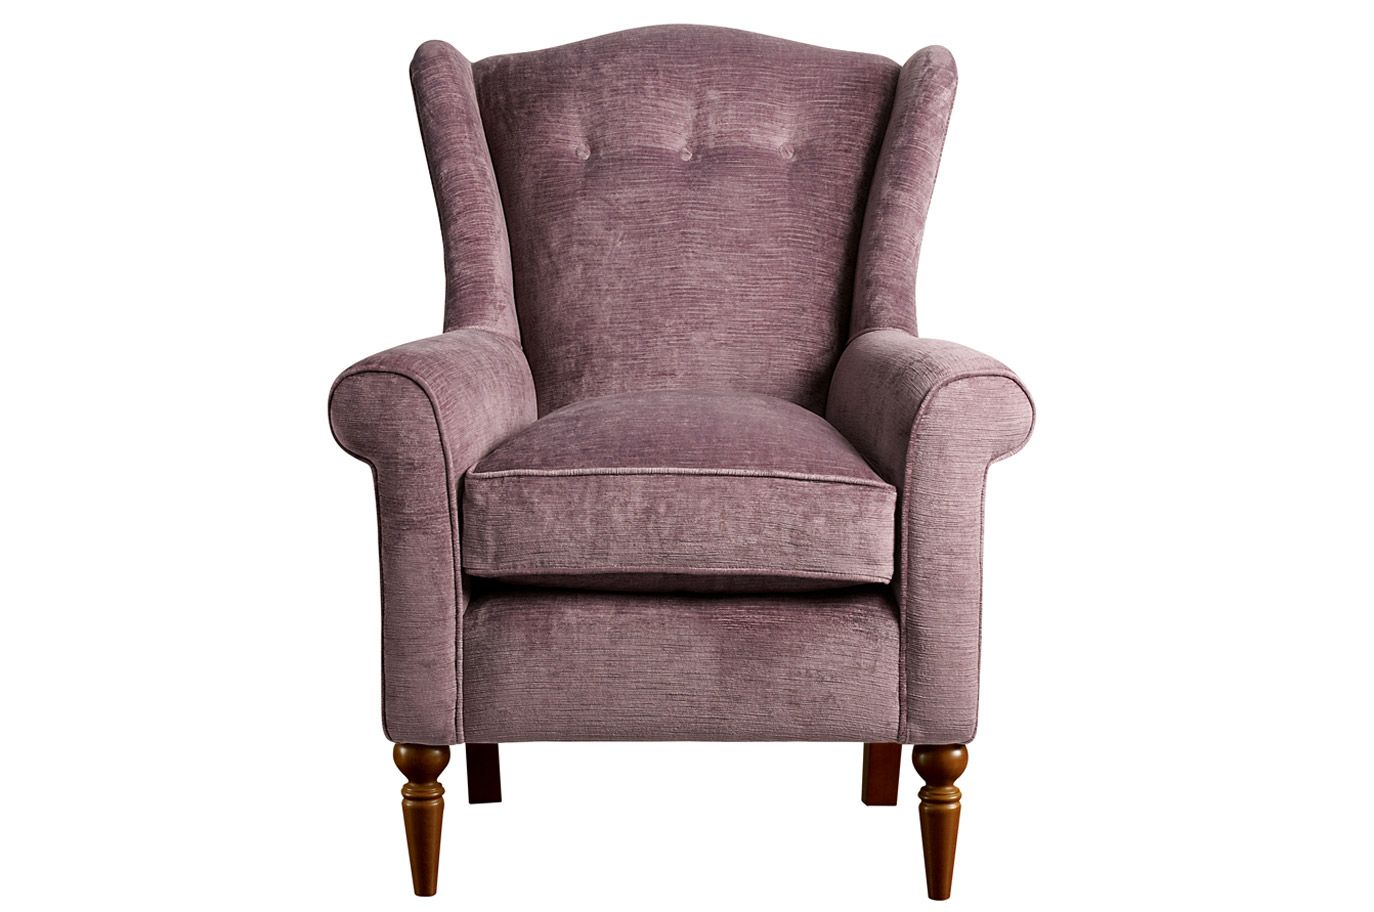 Image detail for finchley upholstered wing chair laura ashley made to order awaken the fire - Laura ashley office chair ...